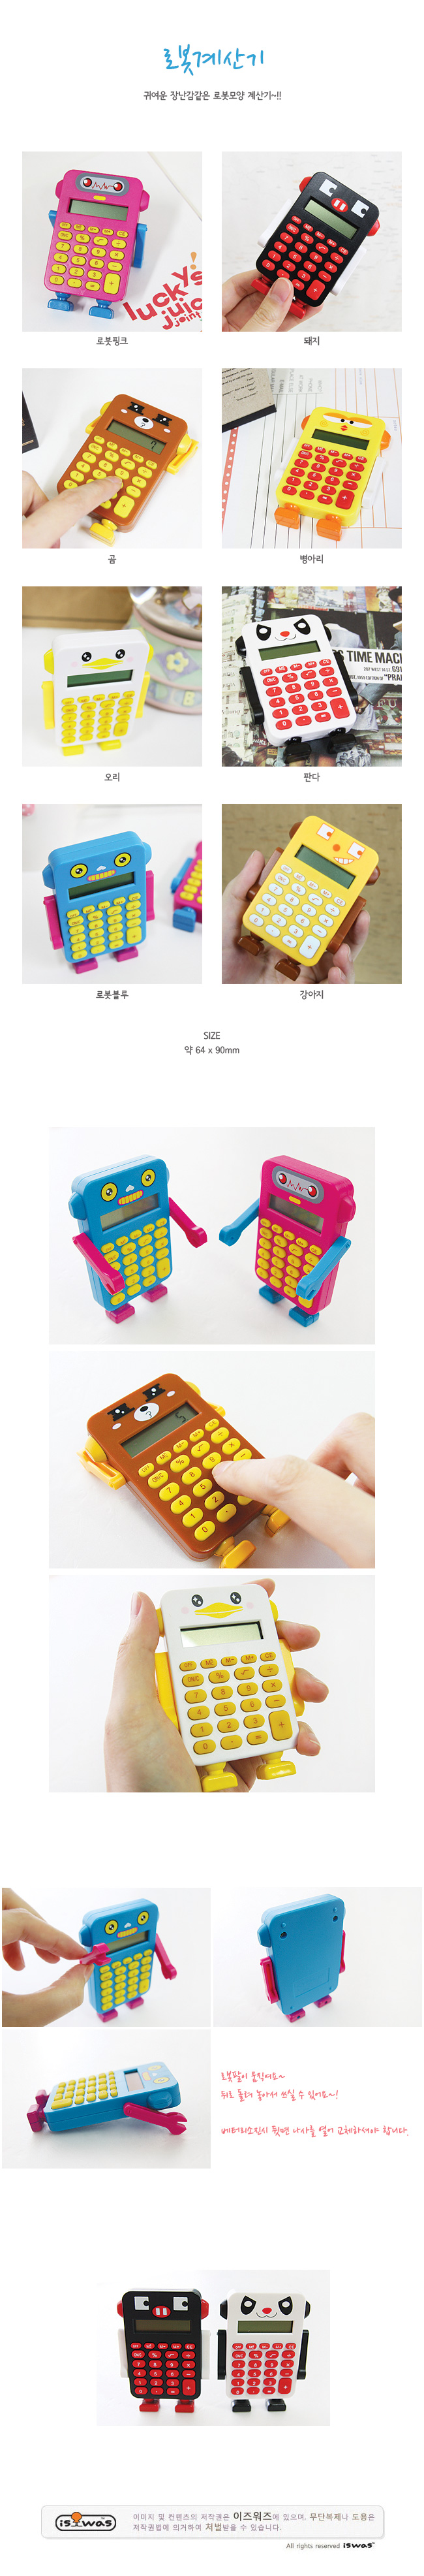 iswas